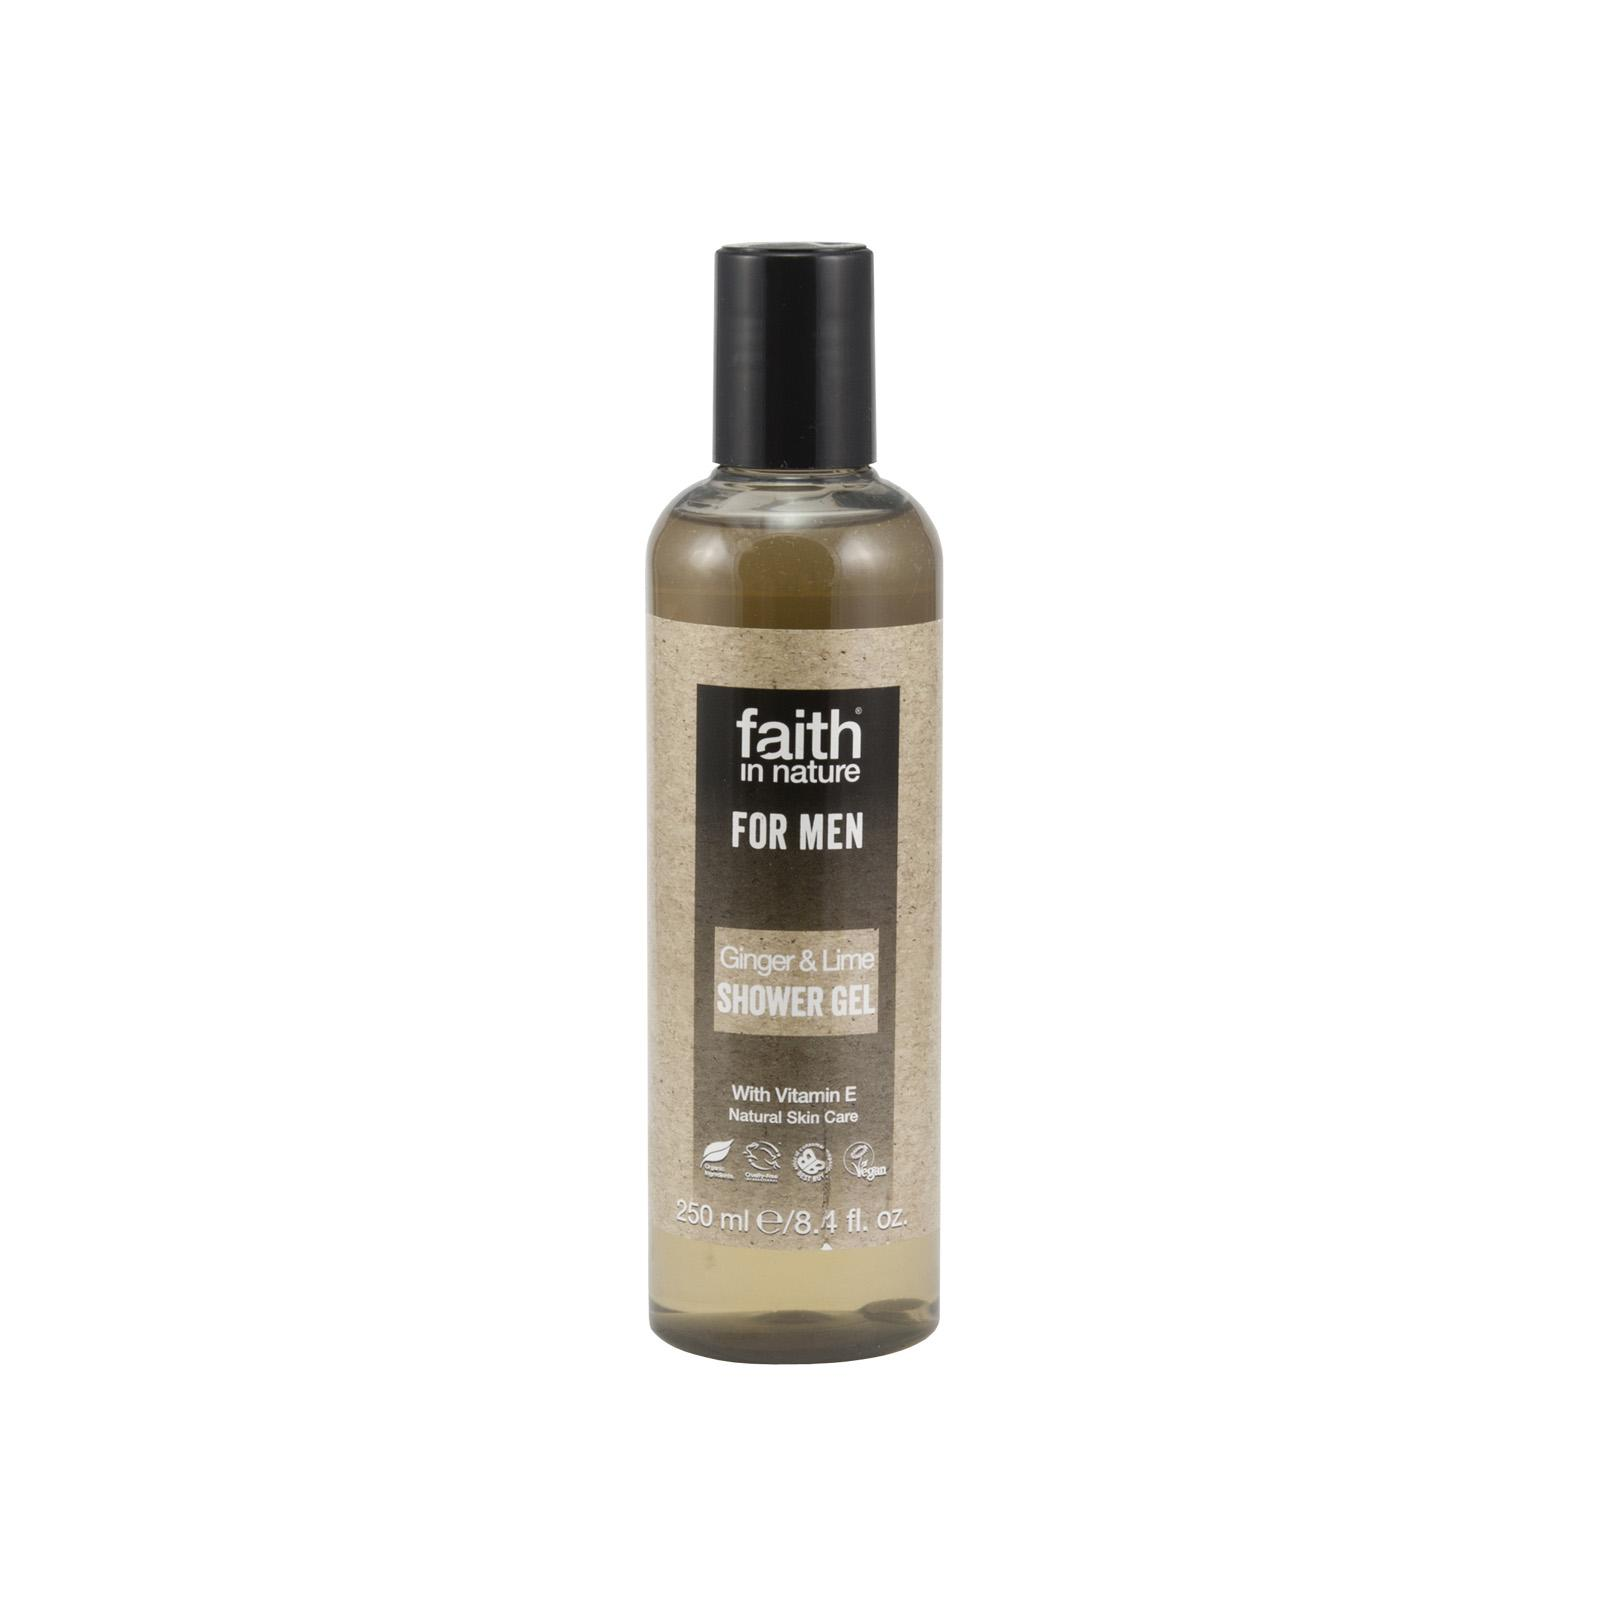 Faith in Nature Sprchový gel zázvor & limeta, Faith for men 250 ml